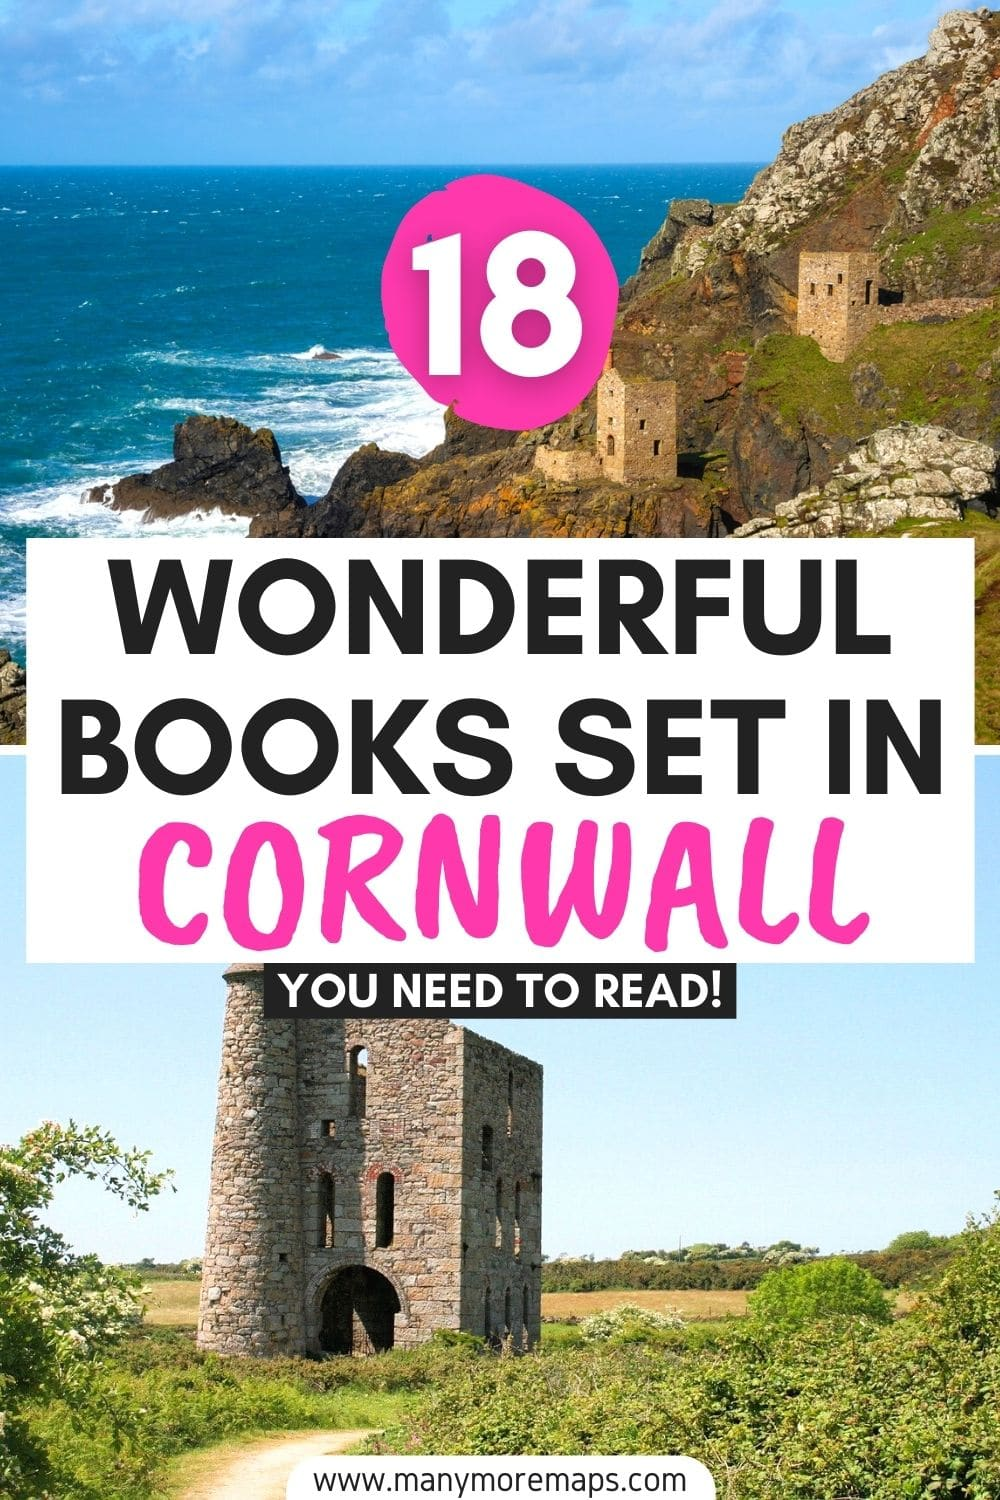 The best fiction and non-fiction books set in or about Cornwall, England - perfect for planning your next trip! Cornwall aesthetic, Cornwall best places to visit, Cornwall trip and travel inspiration, Cornwall cottages, cornwall coast, best books to read on the beach, chick lit books, poldark books aesthetic.